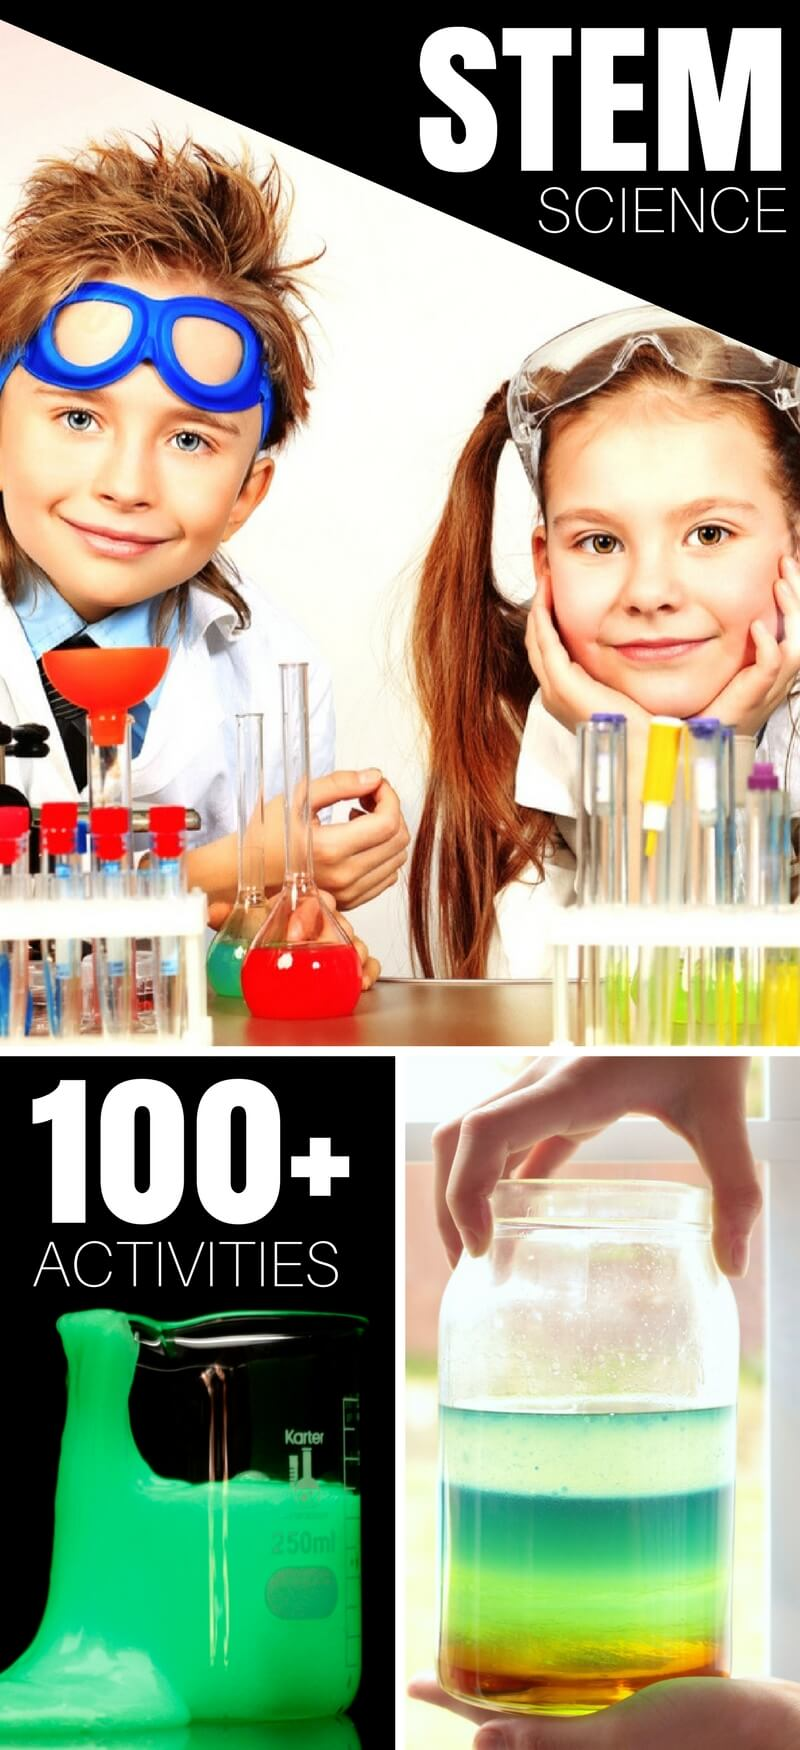 3 creepy experiments on preschoolers